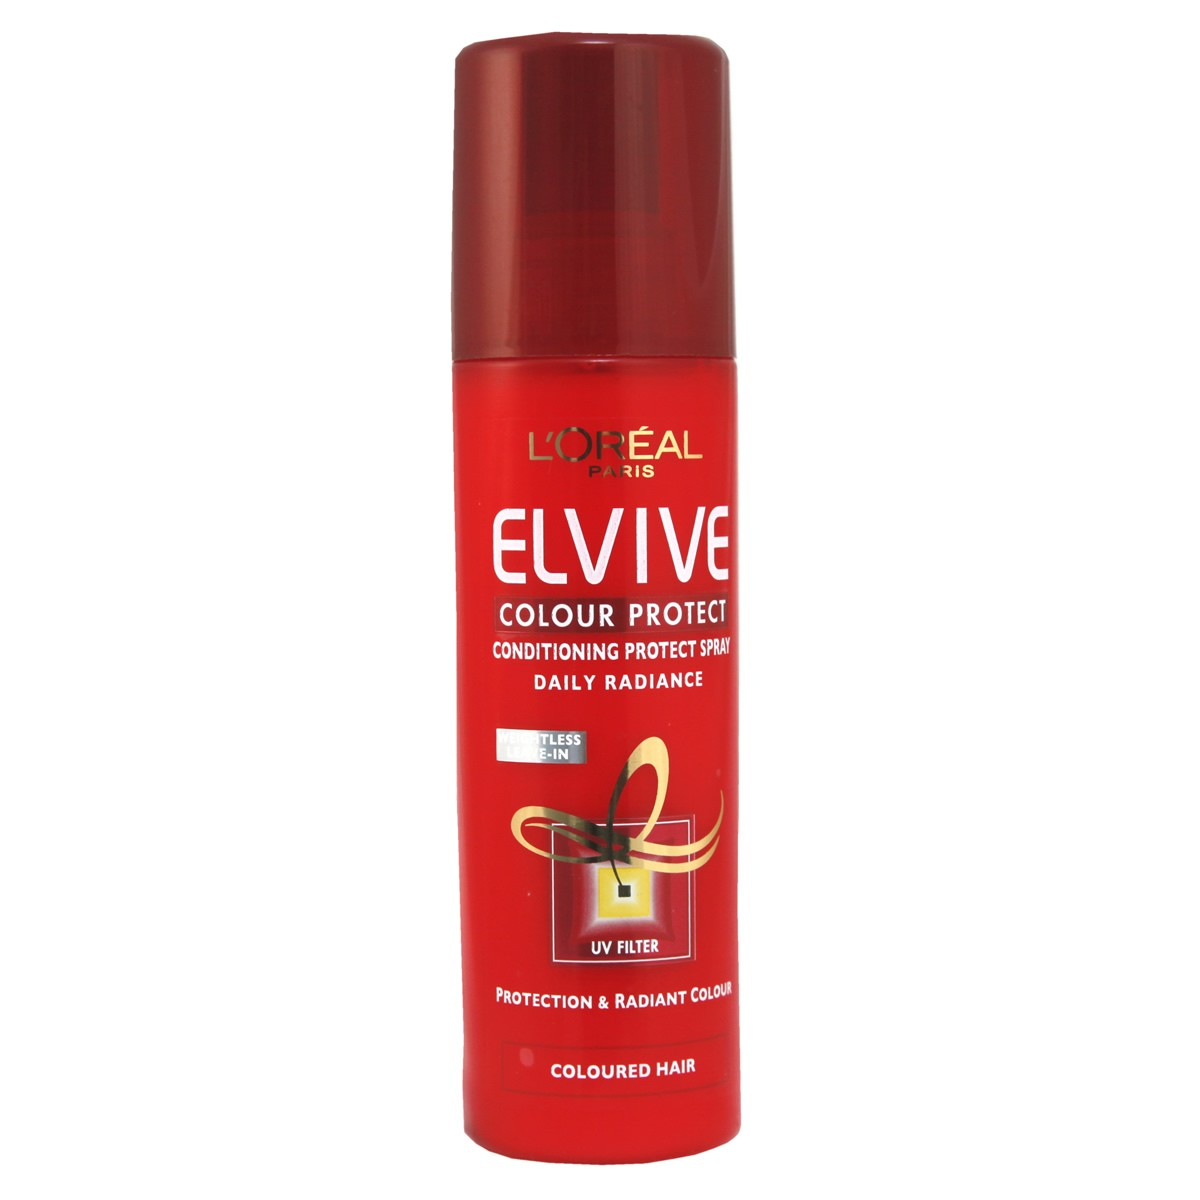 L'Oreal Paris Elvive Colour Protect Conditioning Protect Spray